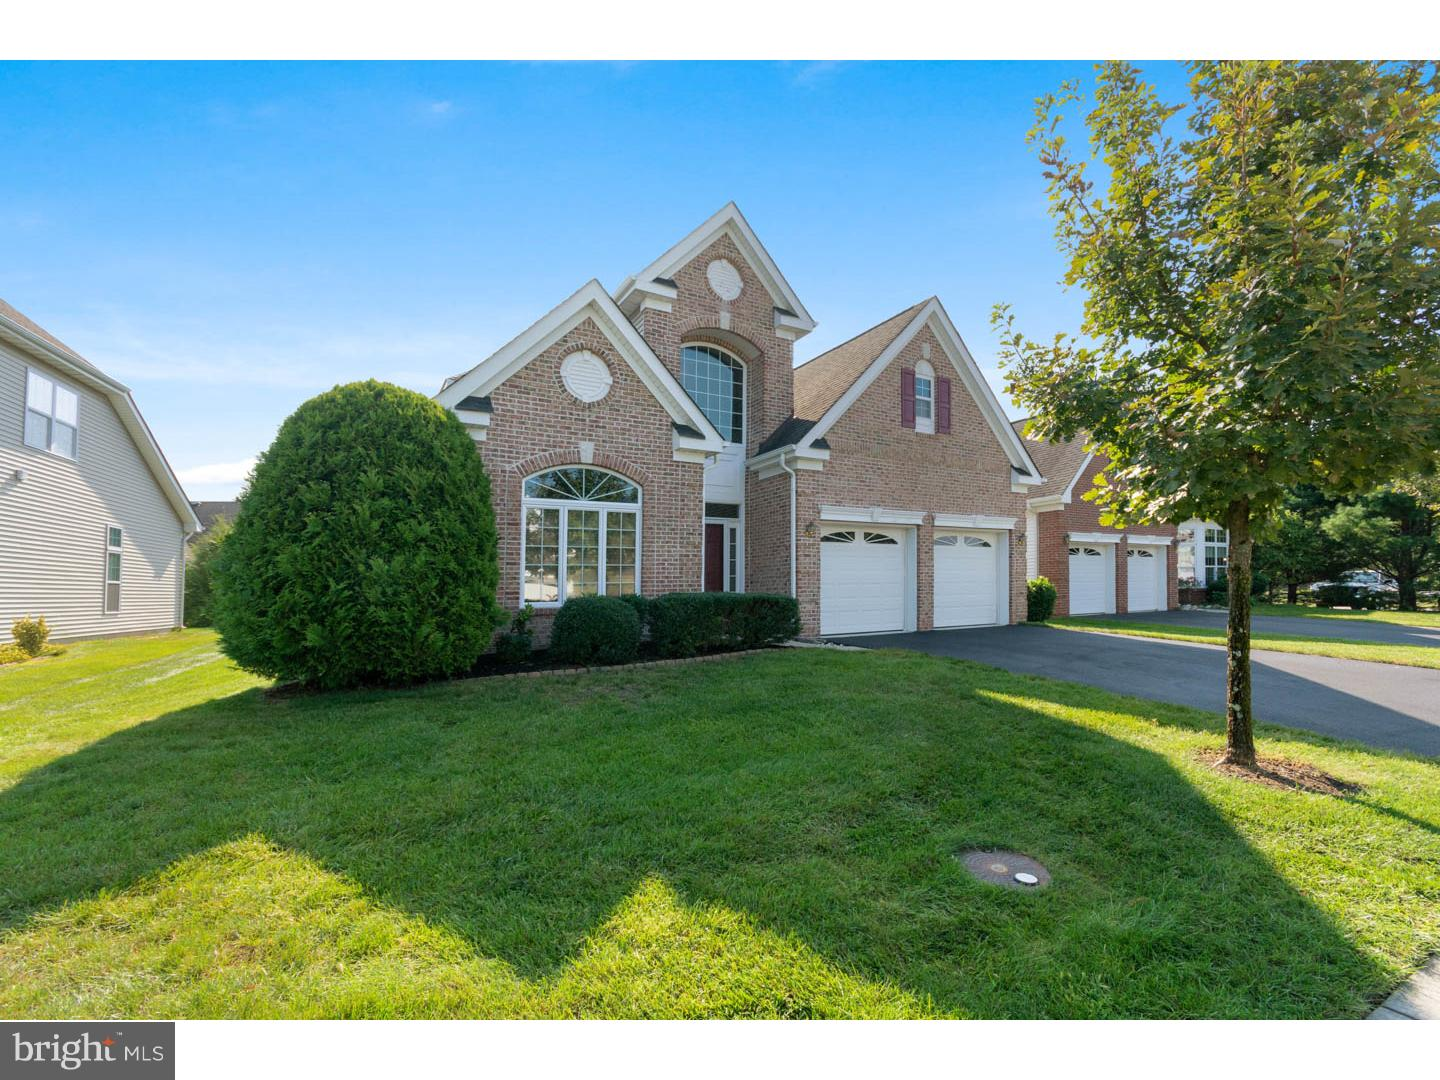 103 MERLINO LANE, MAYS LANDING, NJ 08330